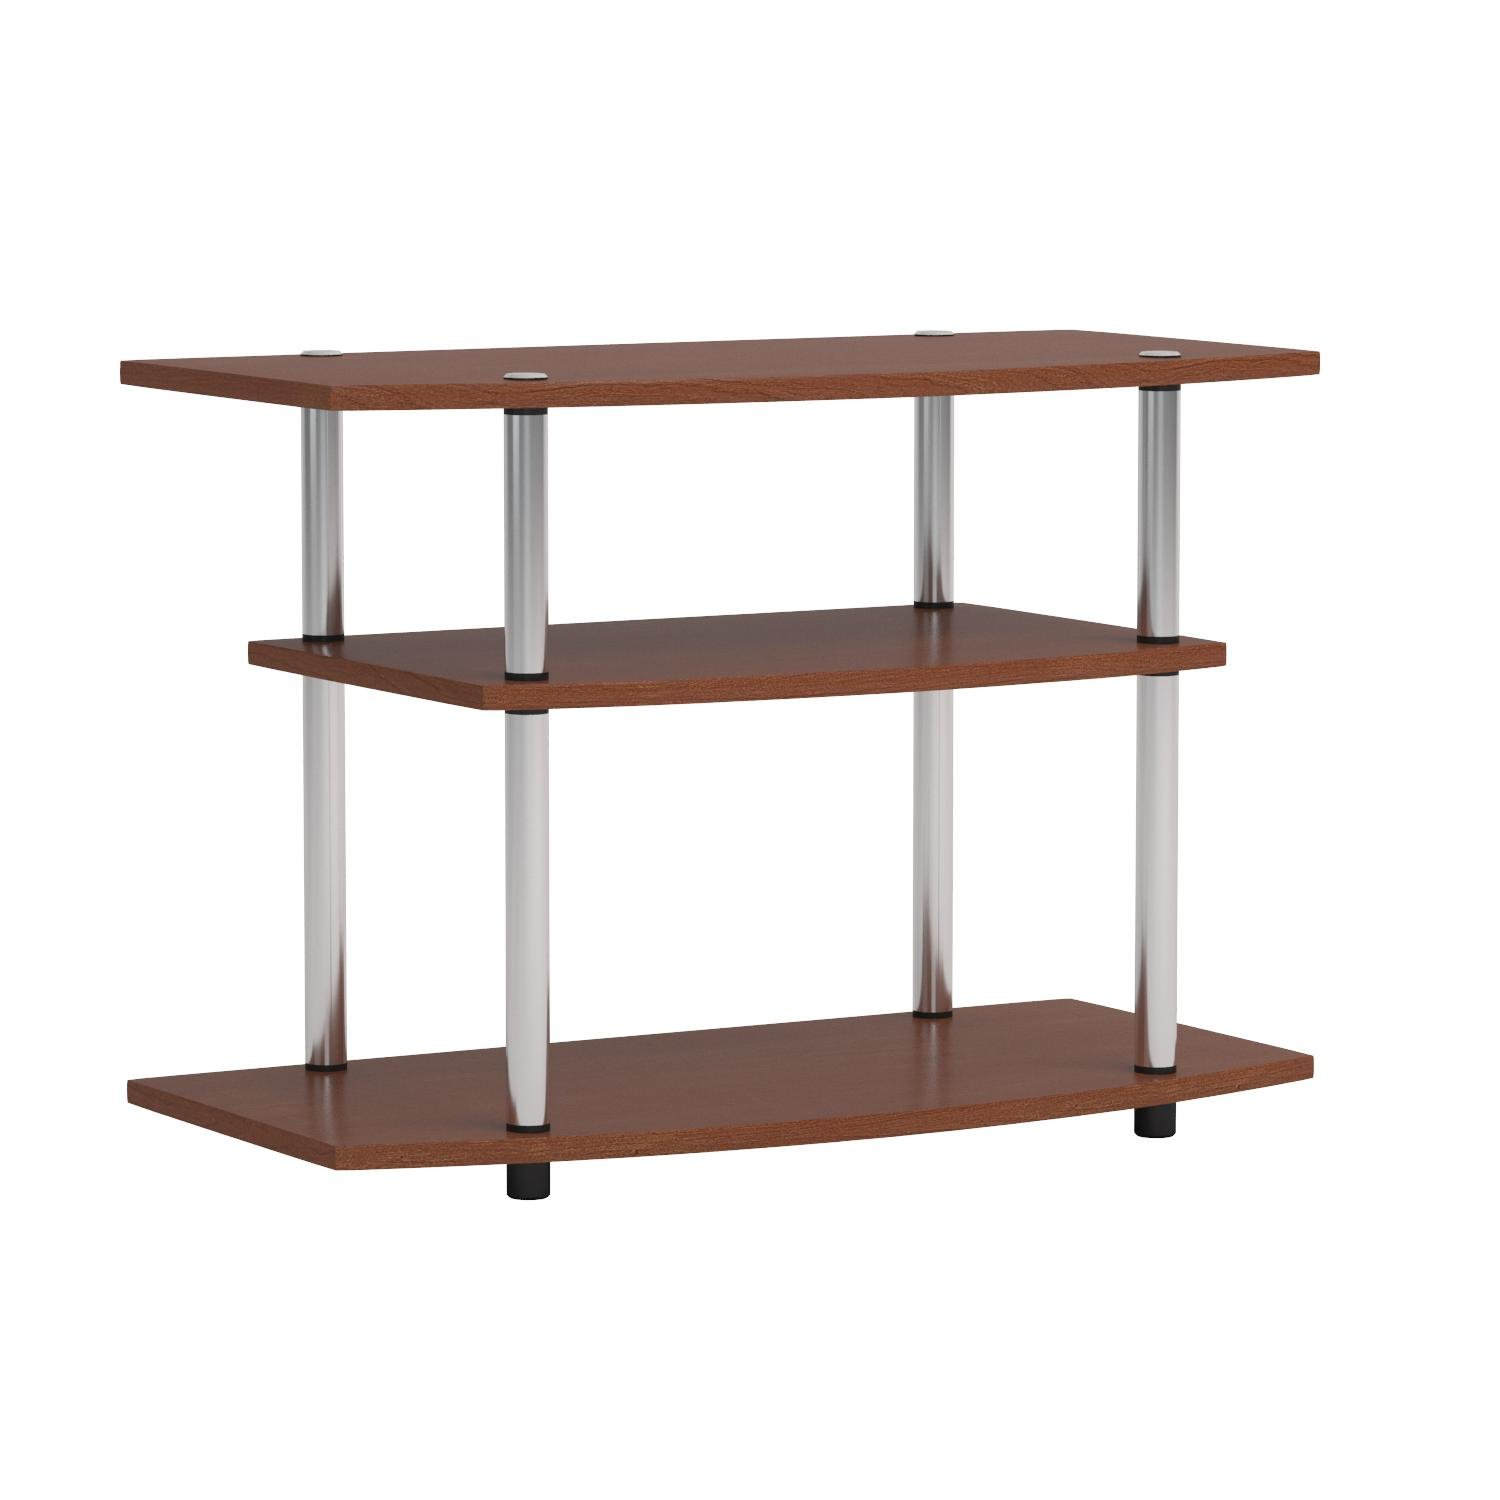 Convenience Concepts Designs2Go 3-Tier TV Stand for Flat Panel Television Up to 32-Inch or 80-Pound, Cherry by Convenience Concepts (Image #5)